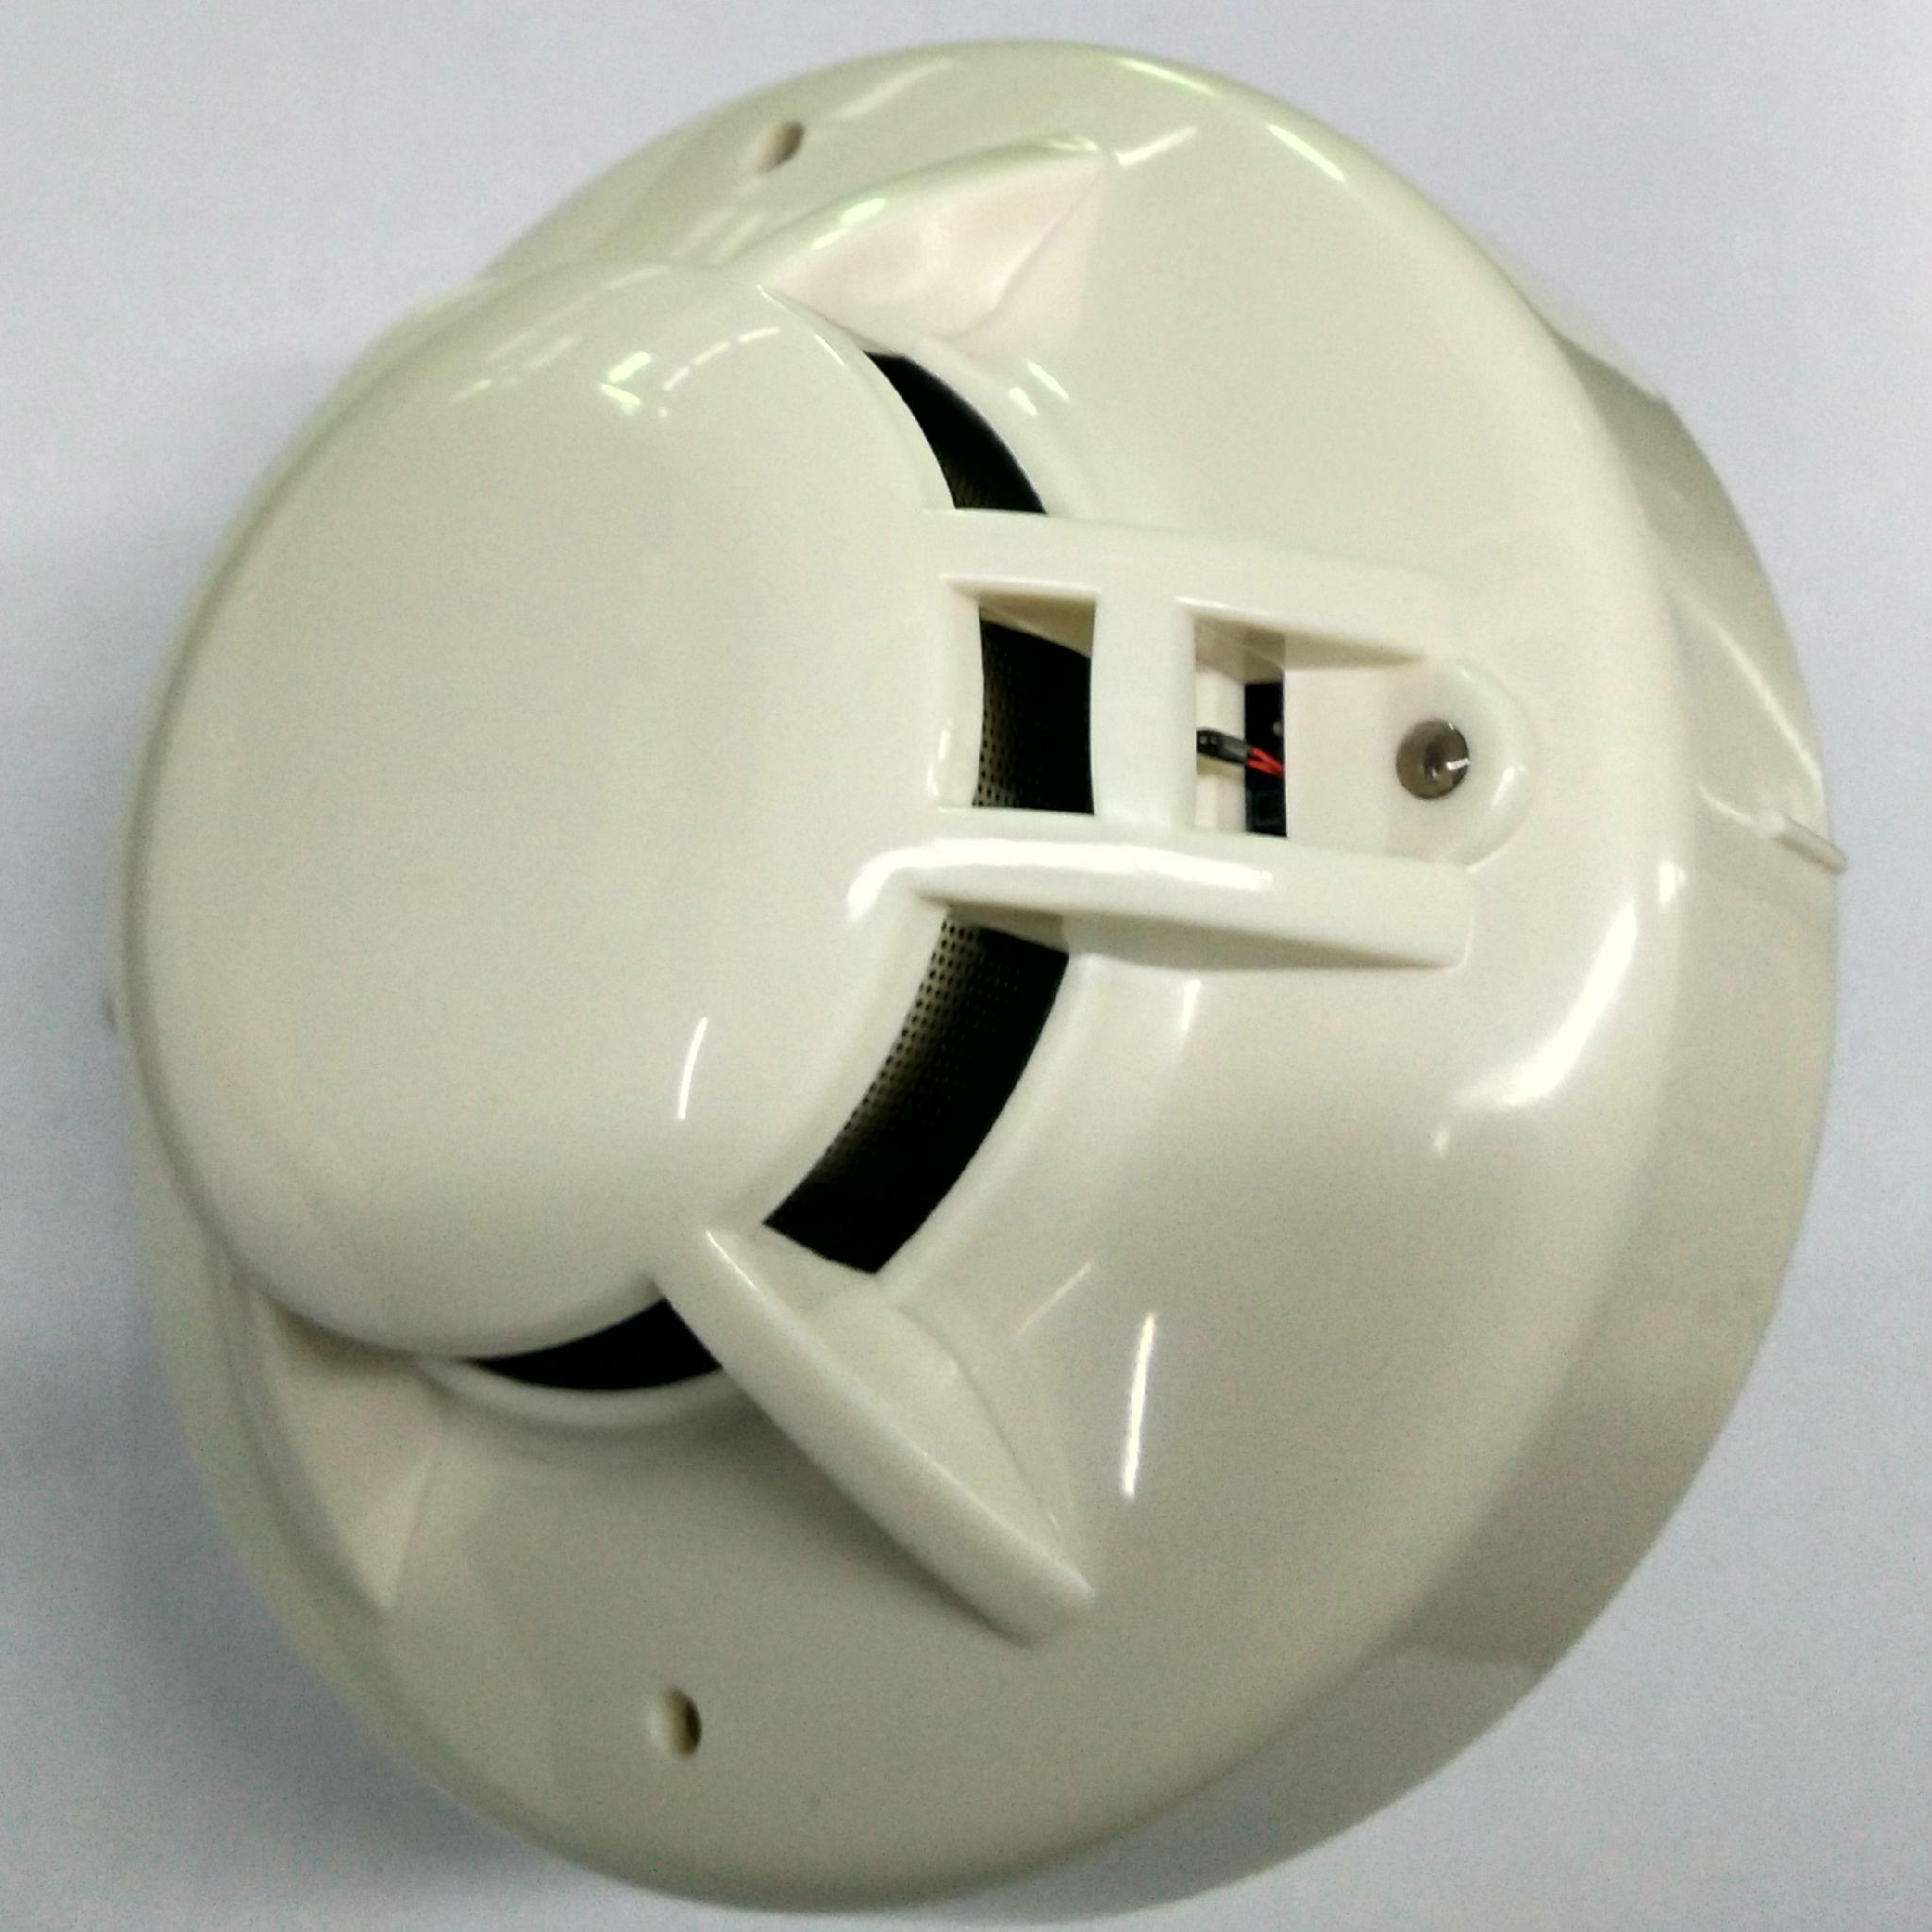 smoke alarm with output